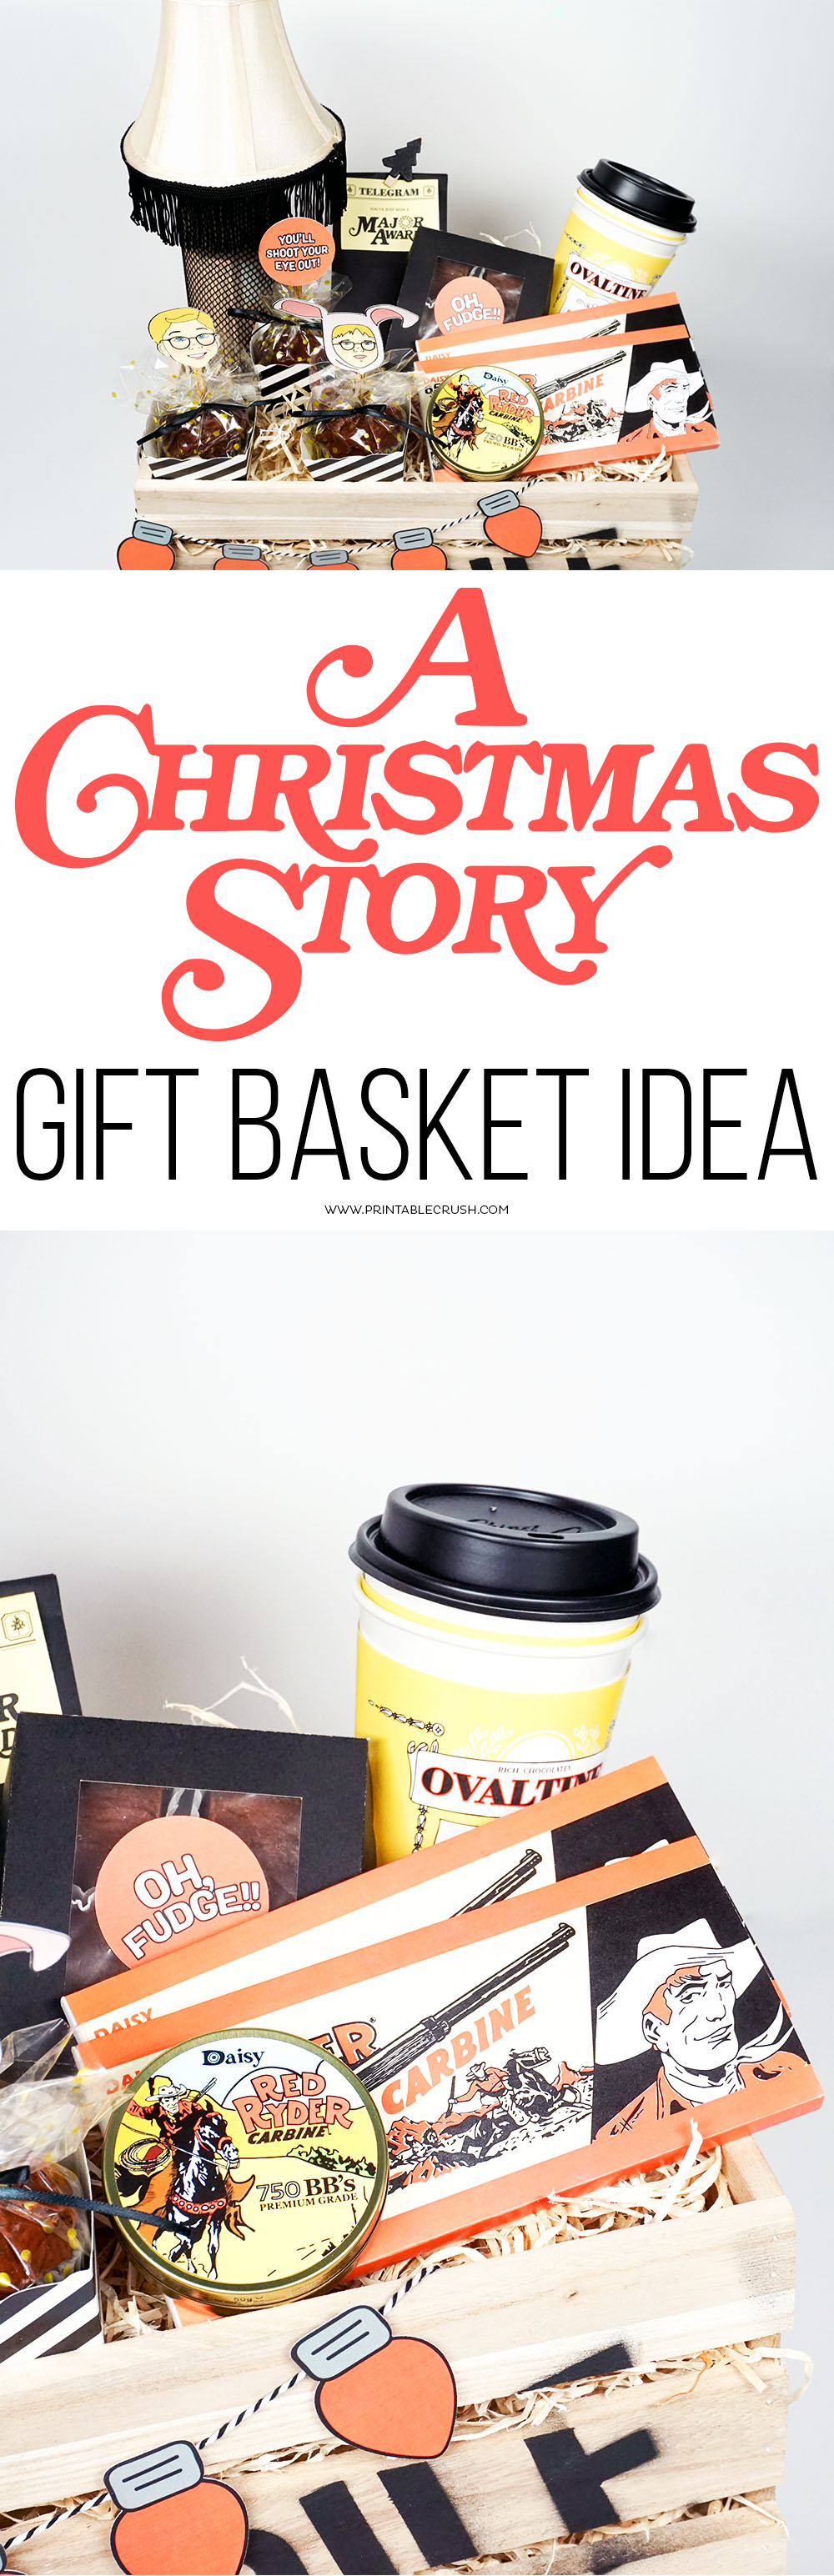 A Christmas Story Gift Basket Idea - Printable Crush